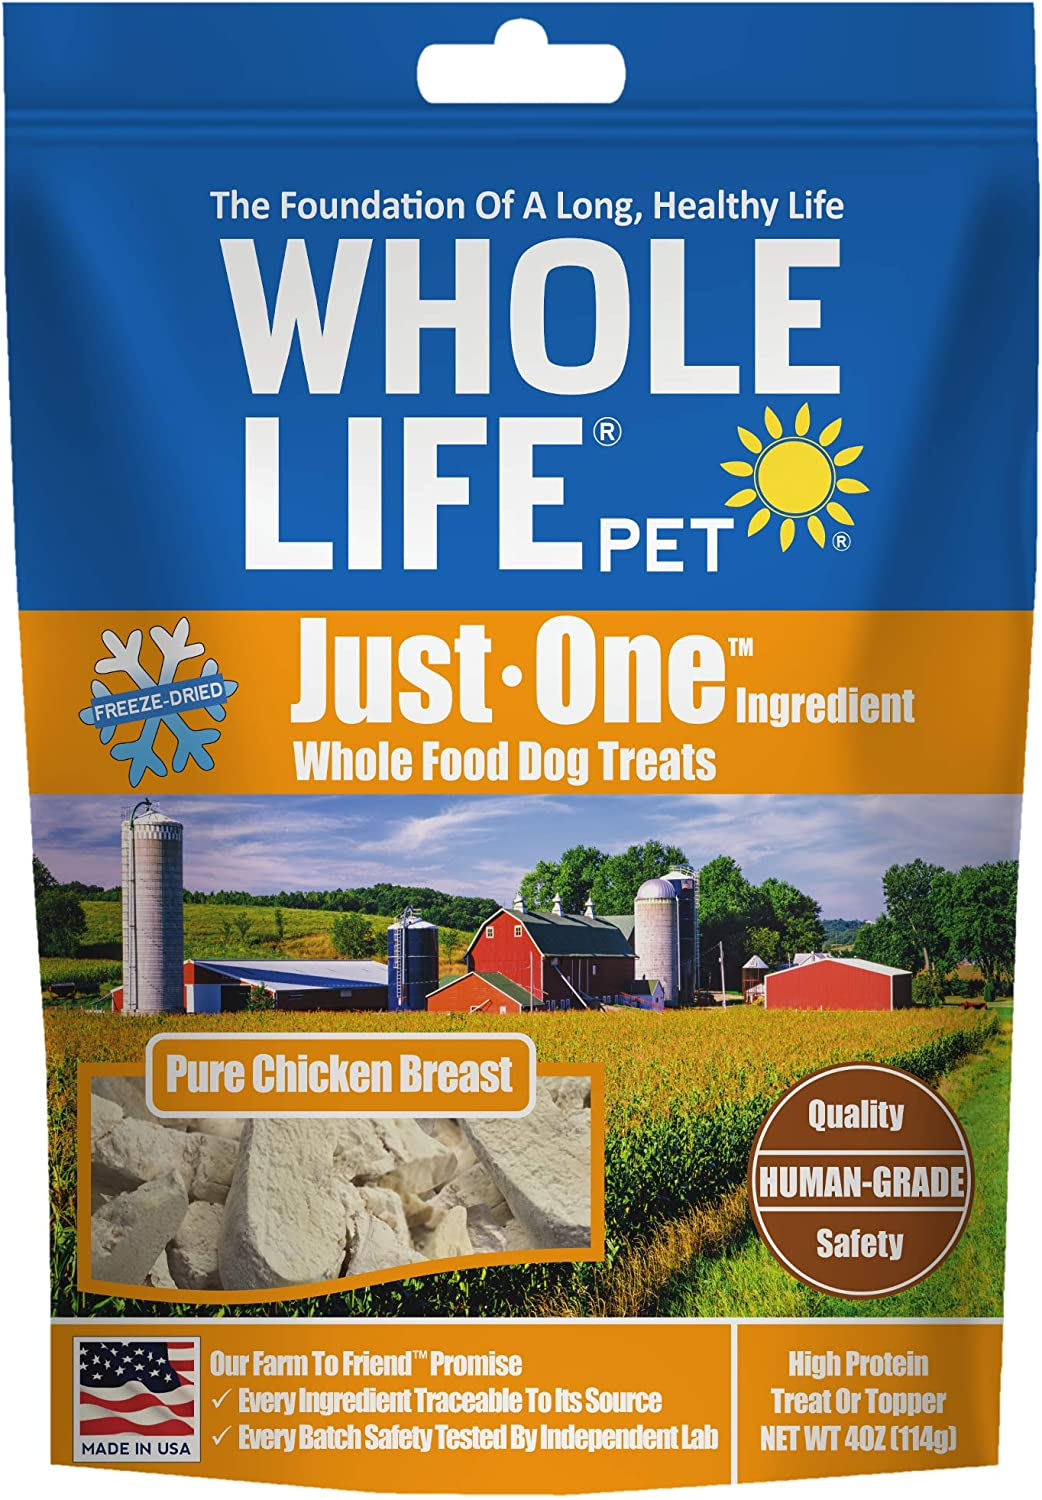 Whole Life Pet Healthy Dog Treats, Human-Grade Chicken, Protein Rich for Training, Picky Eaters, Digestion, Weight Control, Made in the USA, 4 Ounce